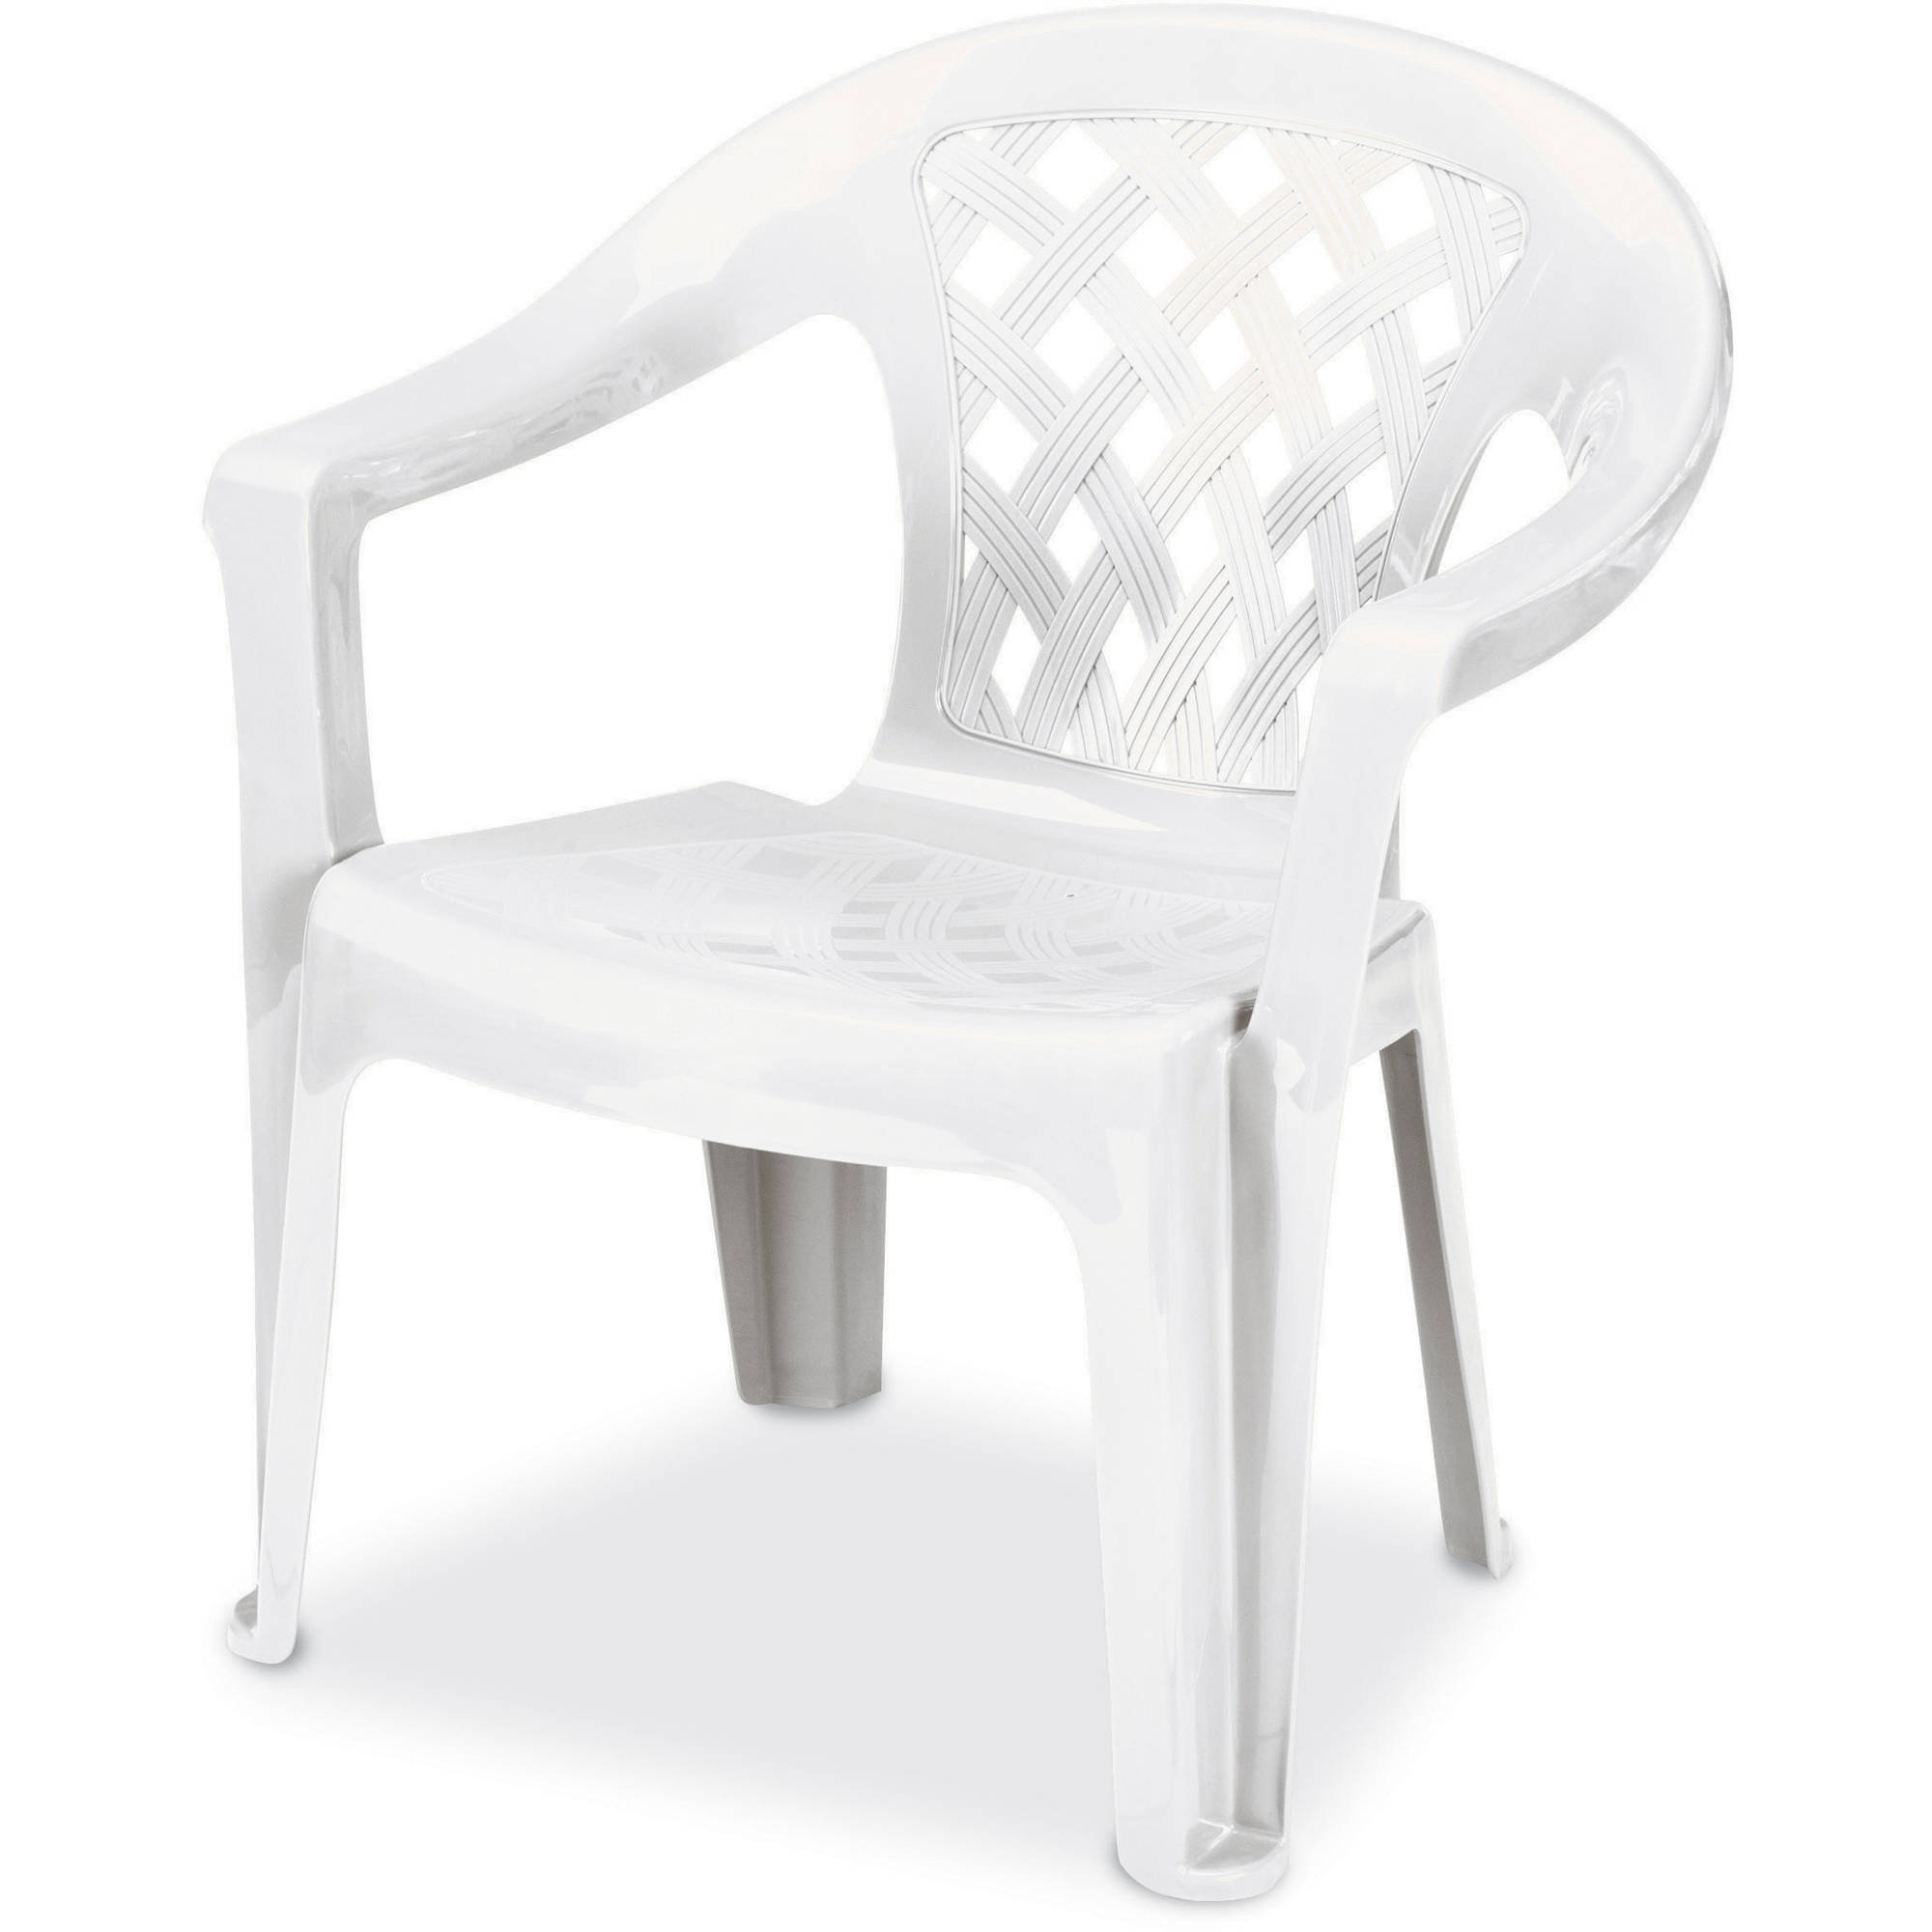 big and tall outdoor resin chairs chair covers malta us leisure lowback white walmart com